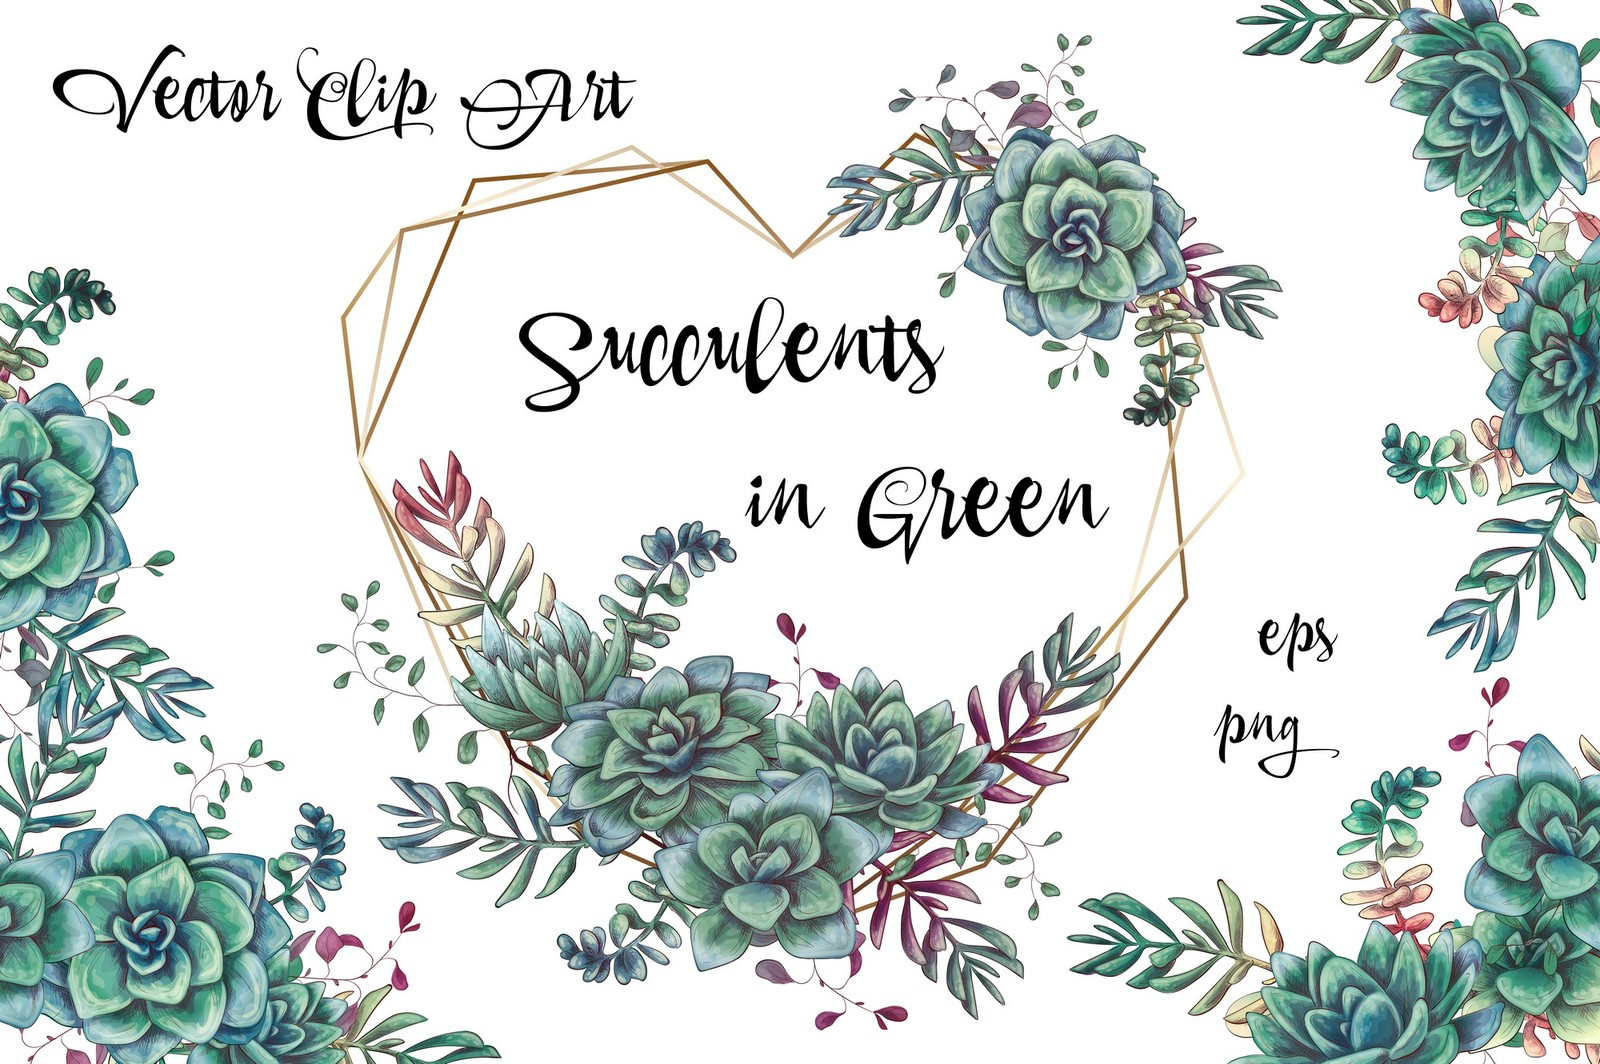 Succulents in green